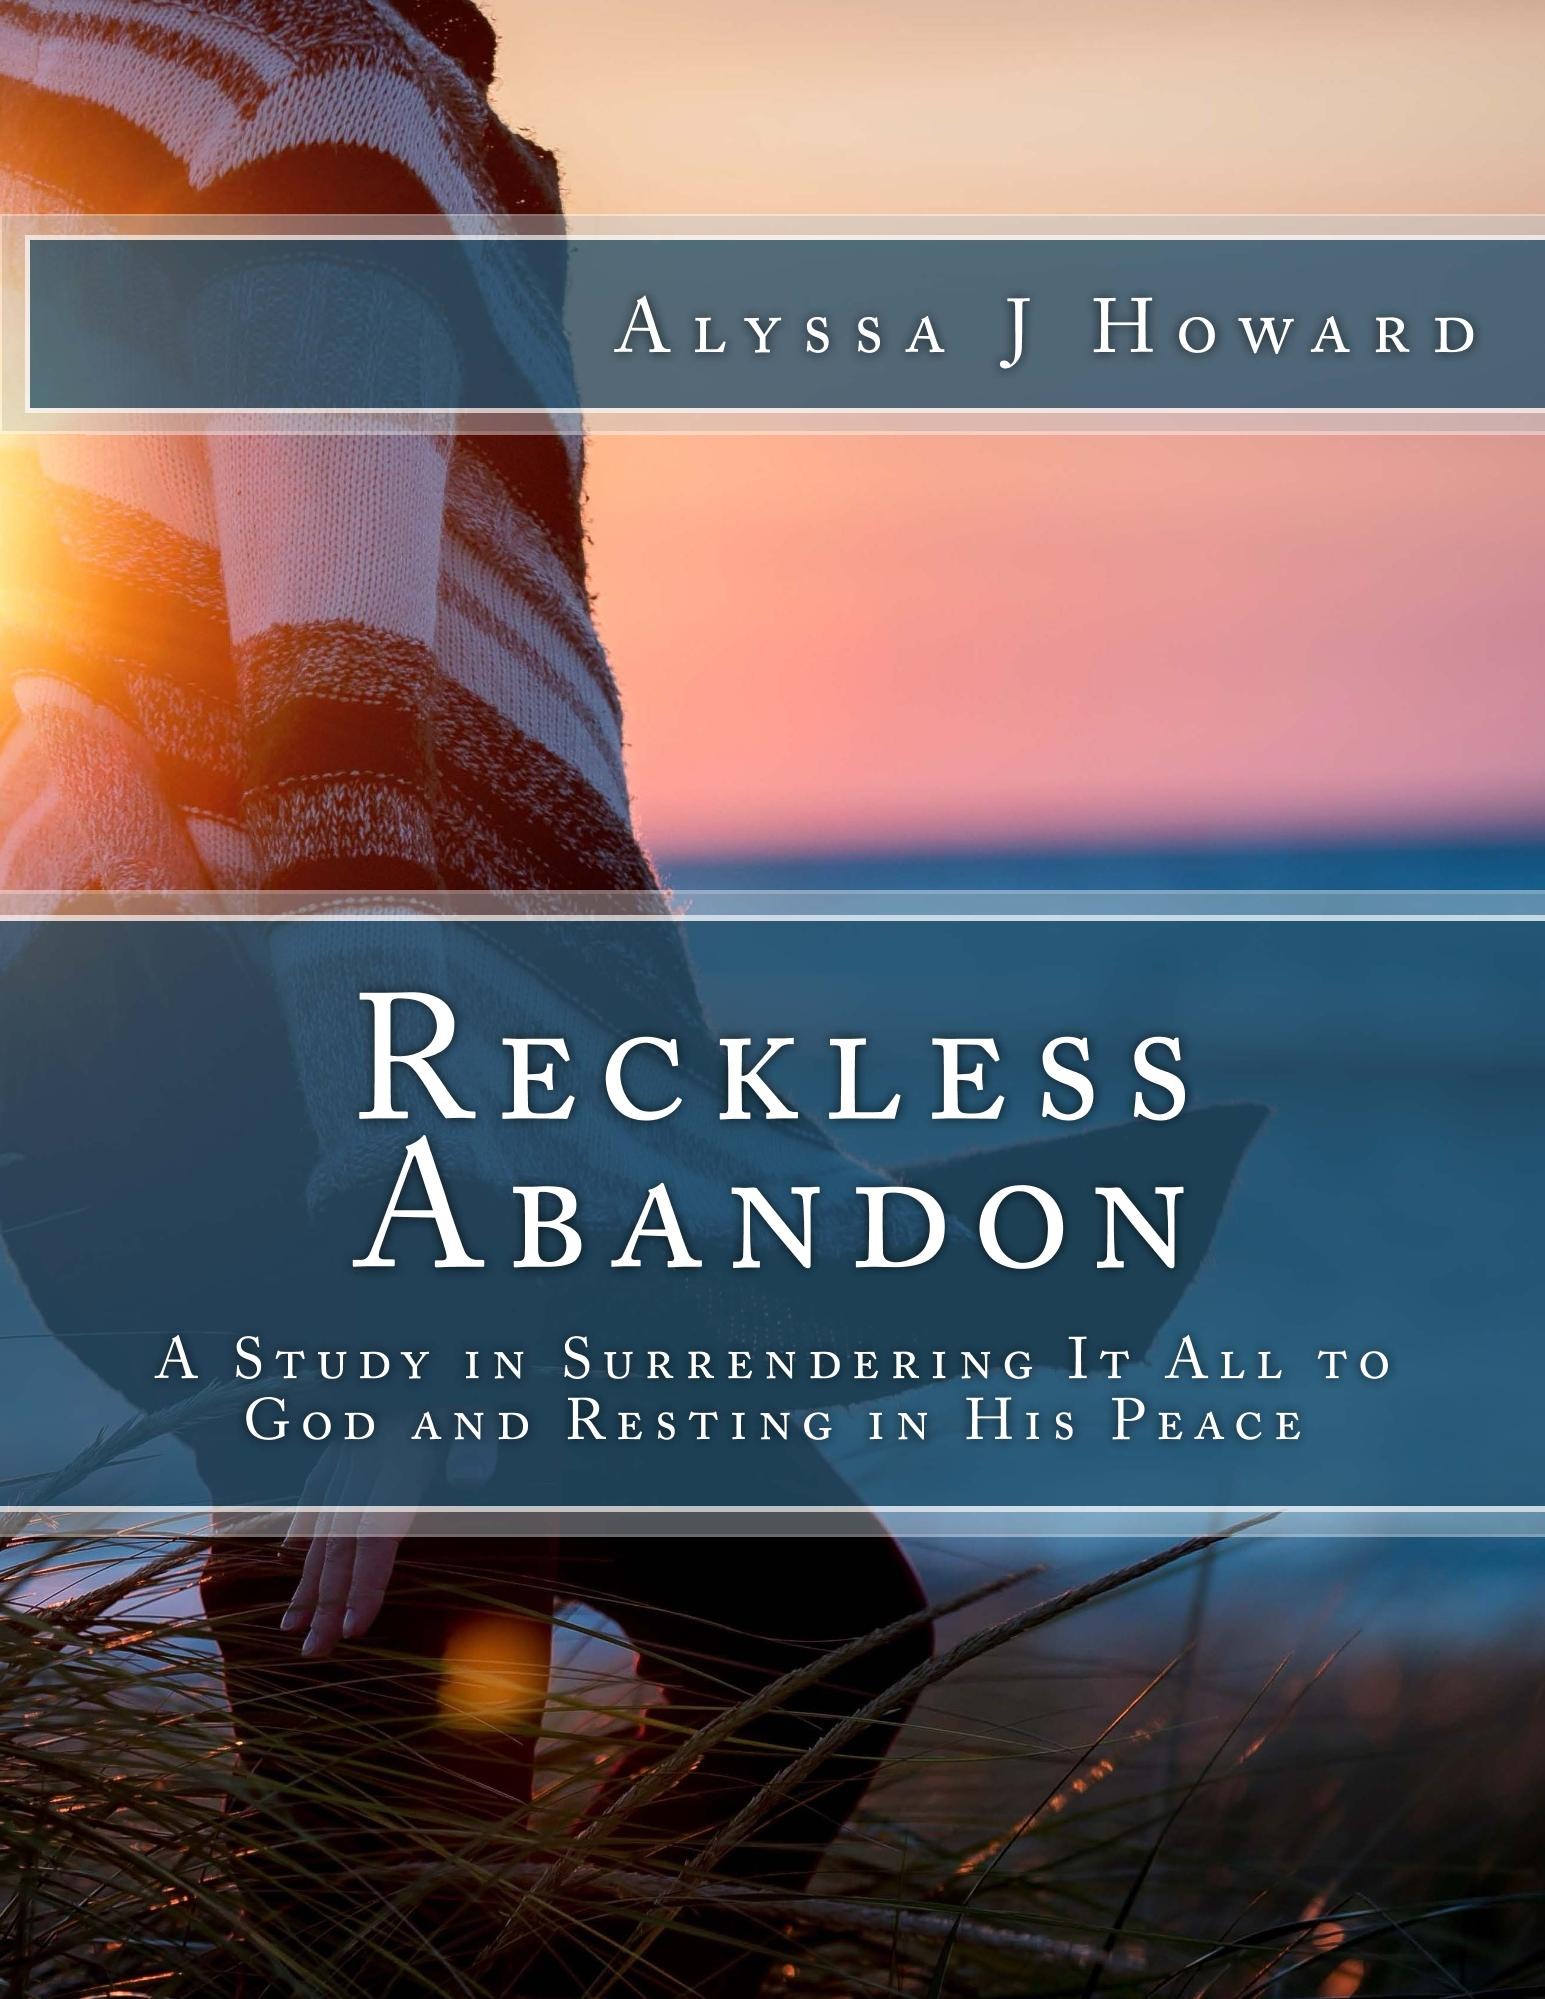 Reckless Abandon: A Study in Surrendering It All to God and Resting in His Peace | alyssajhoward.com